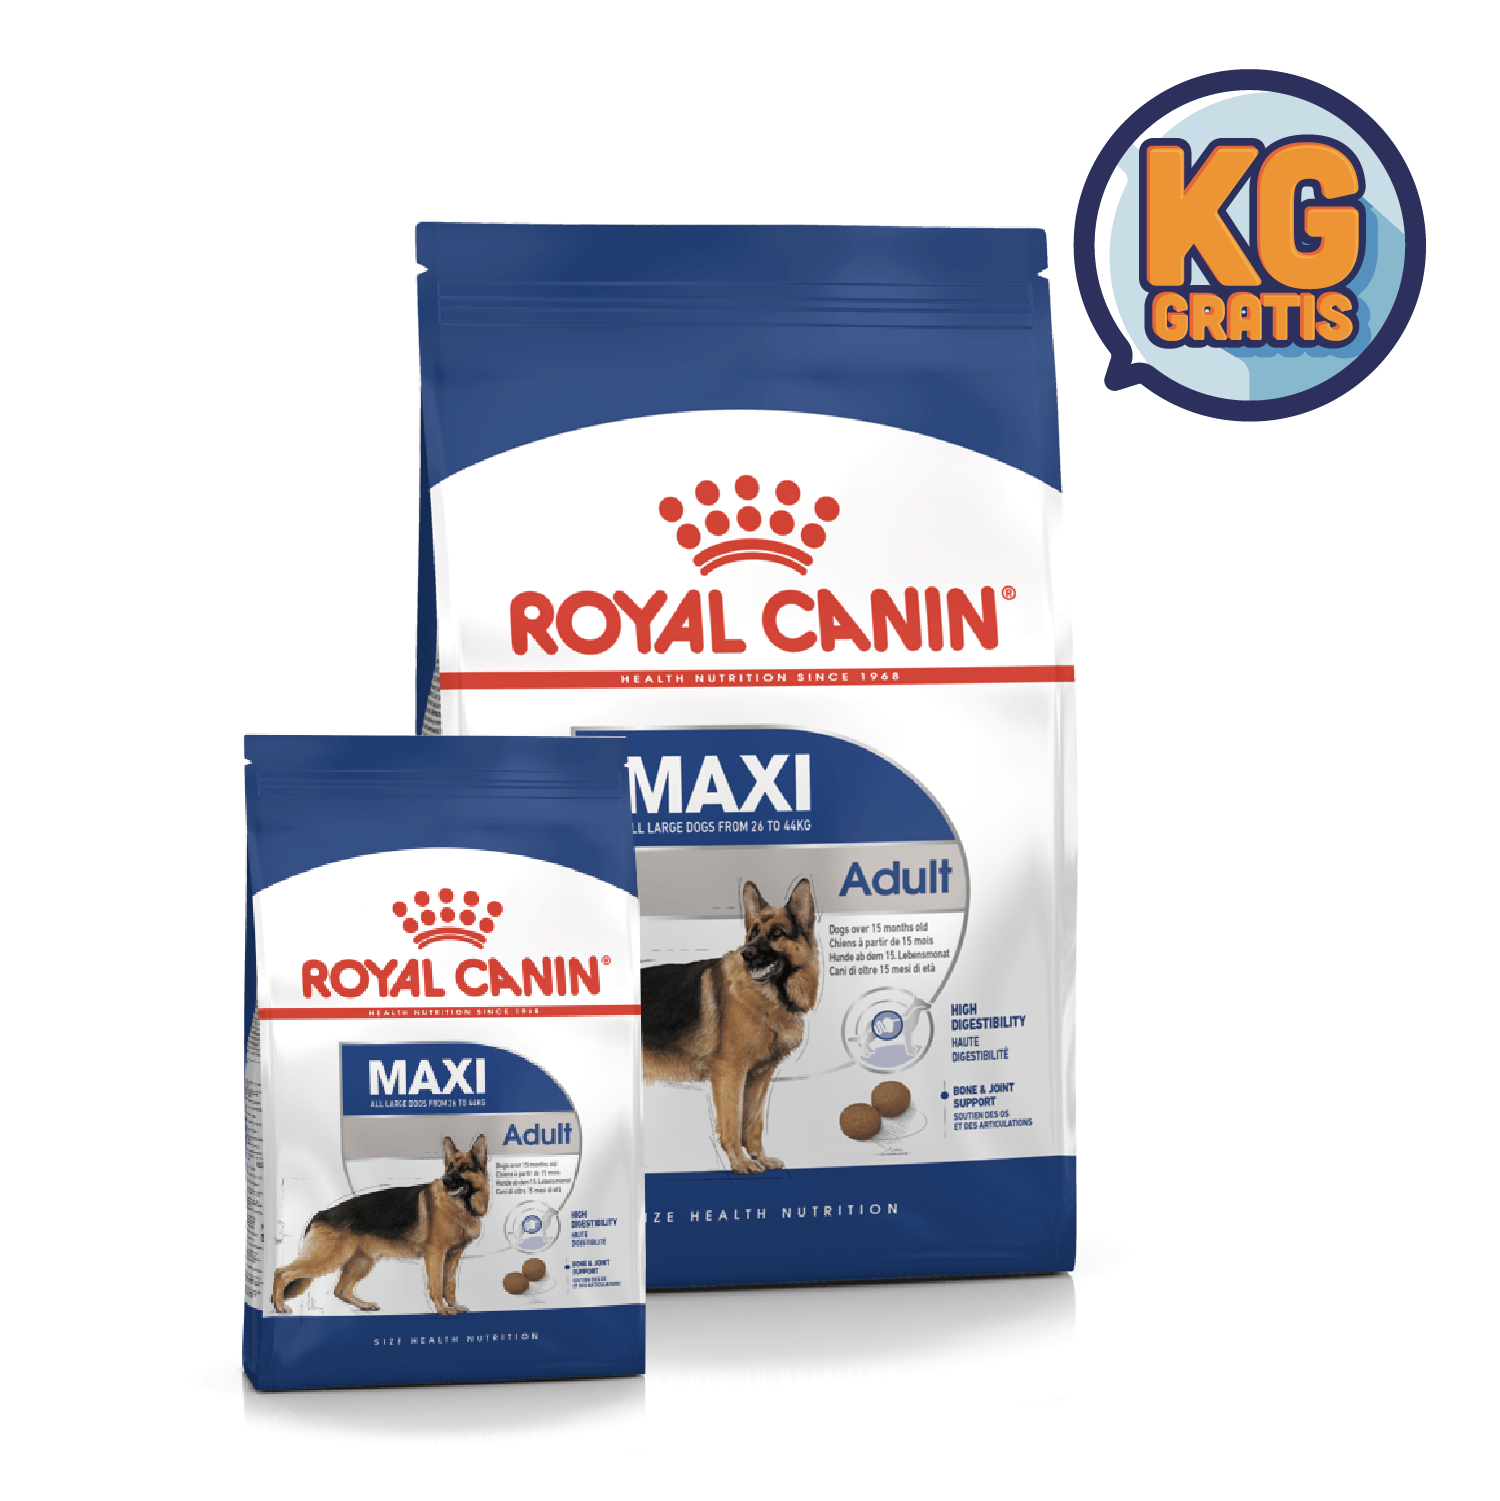 Royal Canin Maxi Adult 15 Kg + 3 Kg Gratis